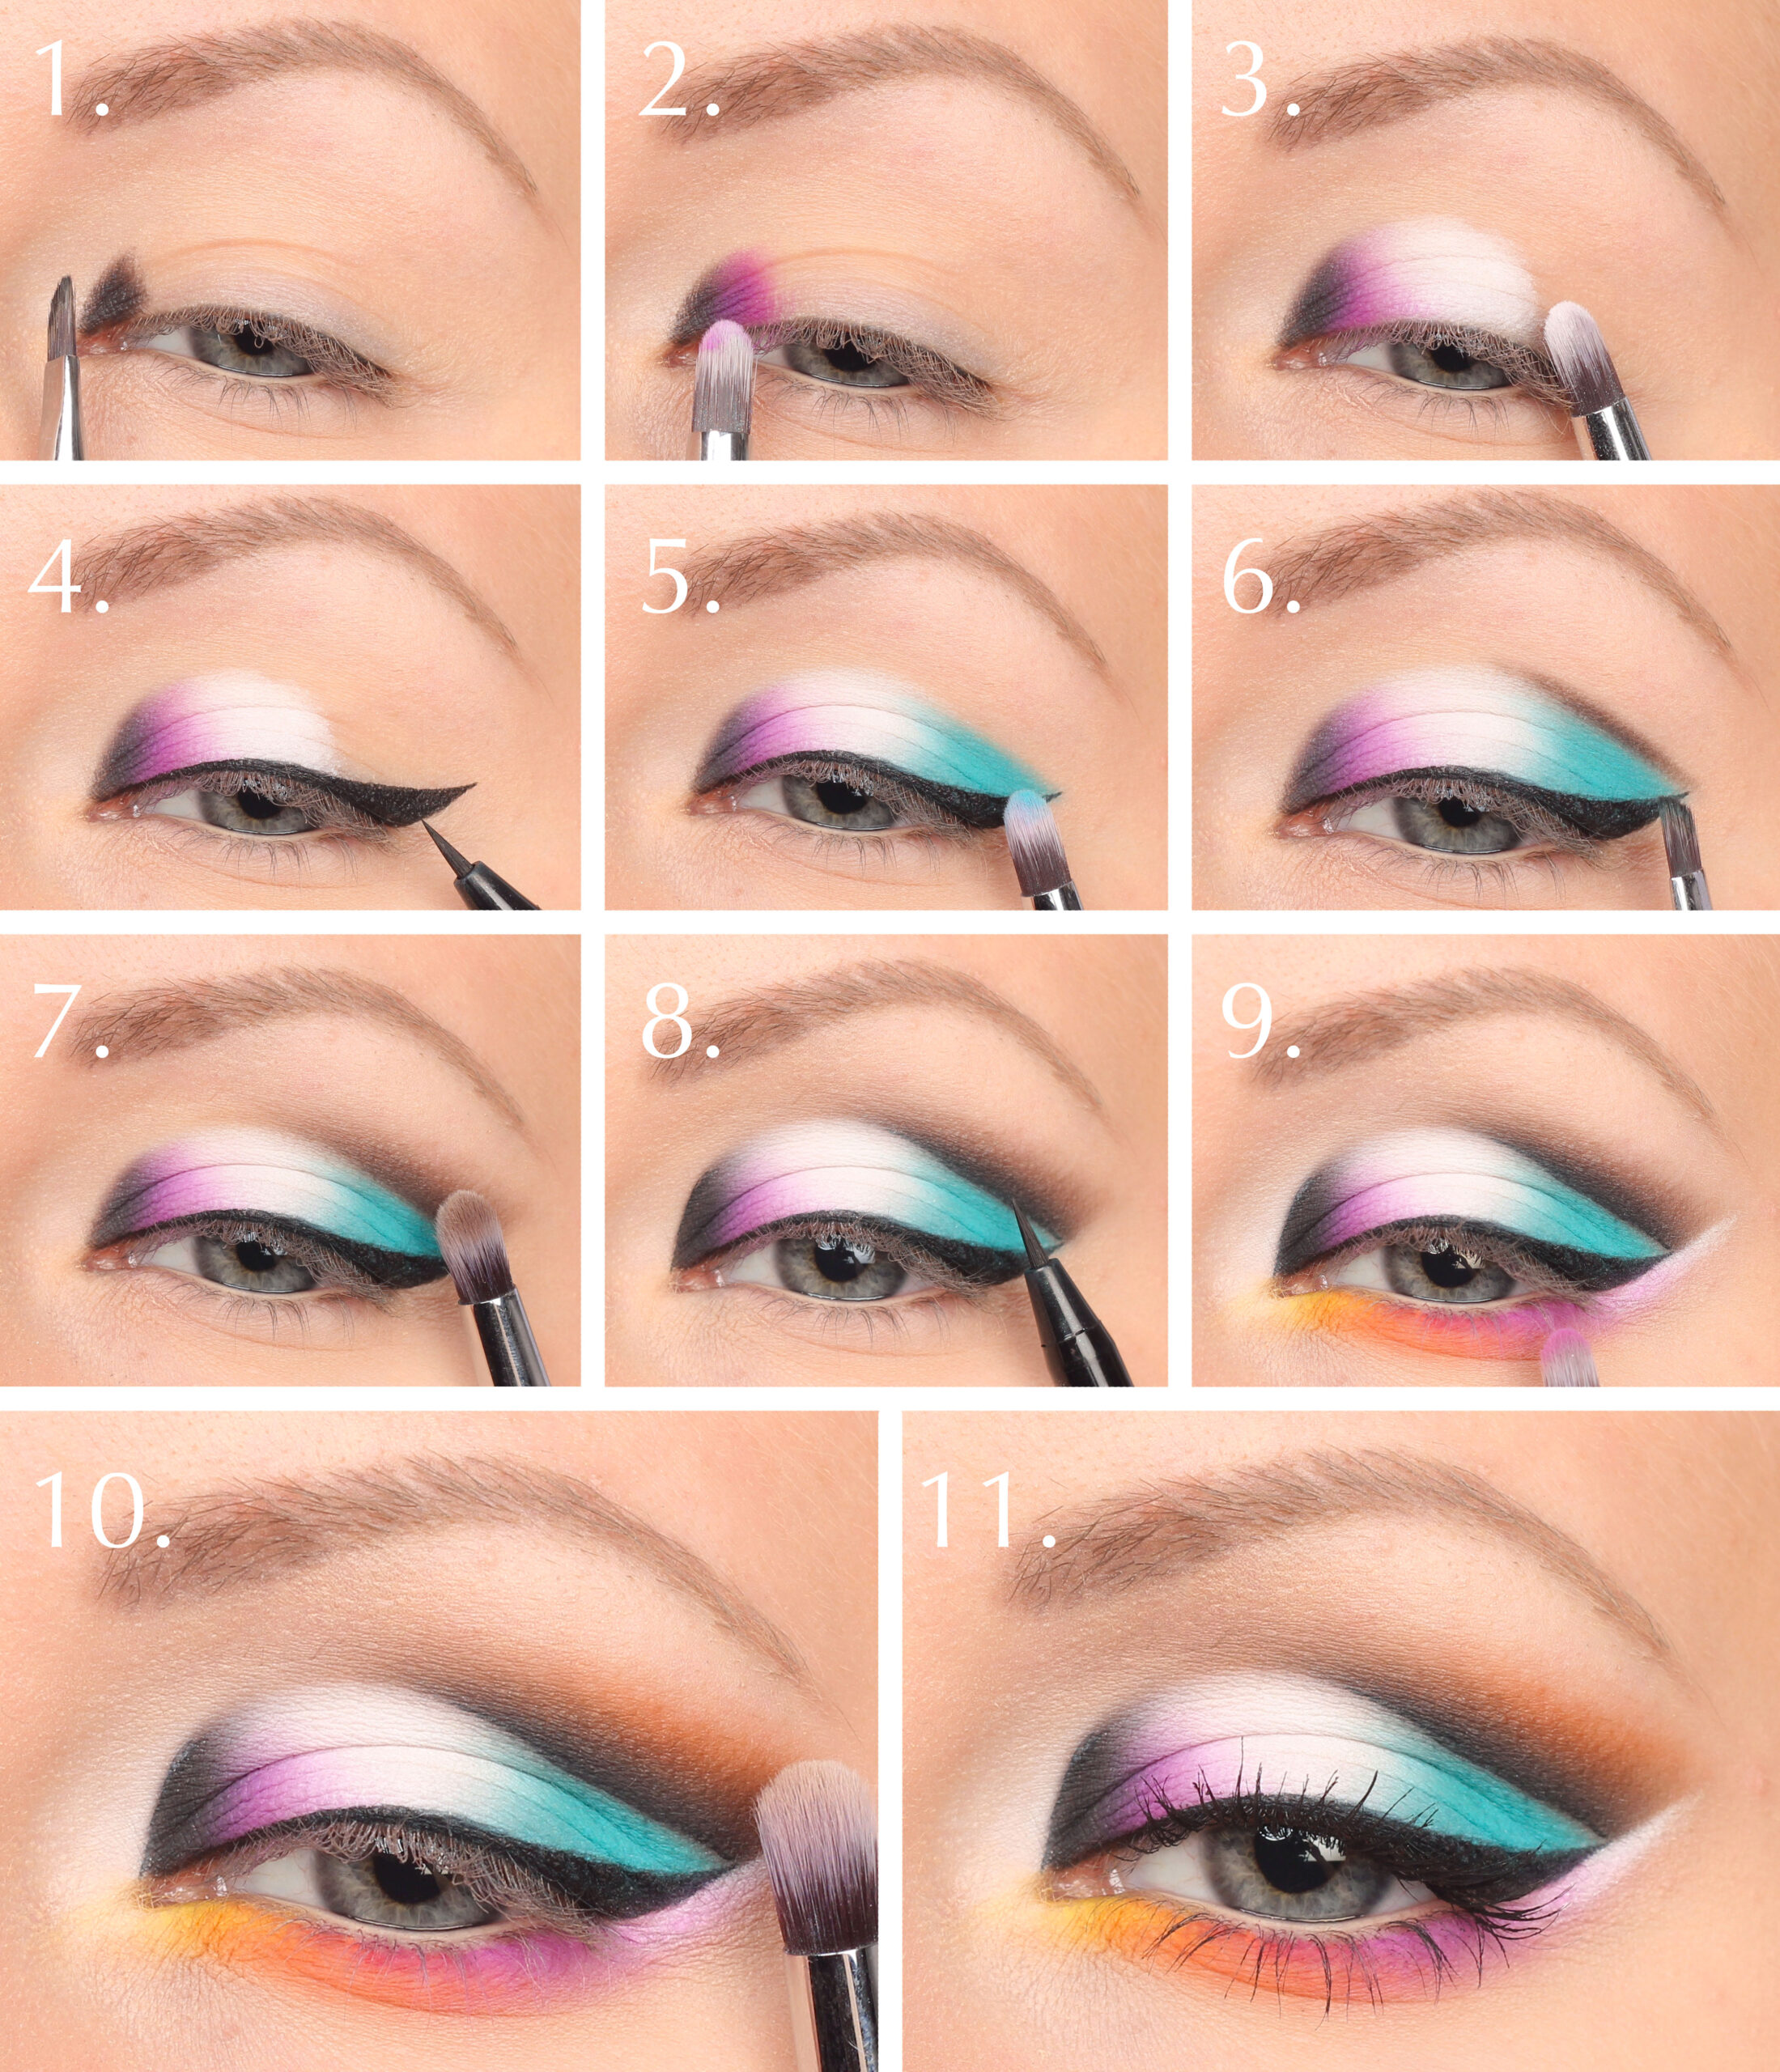 neon makeup-step-by-step